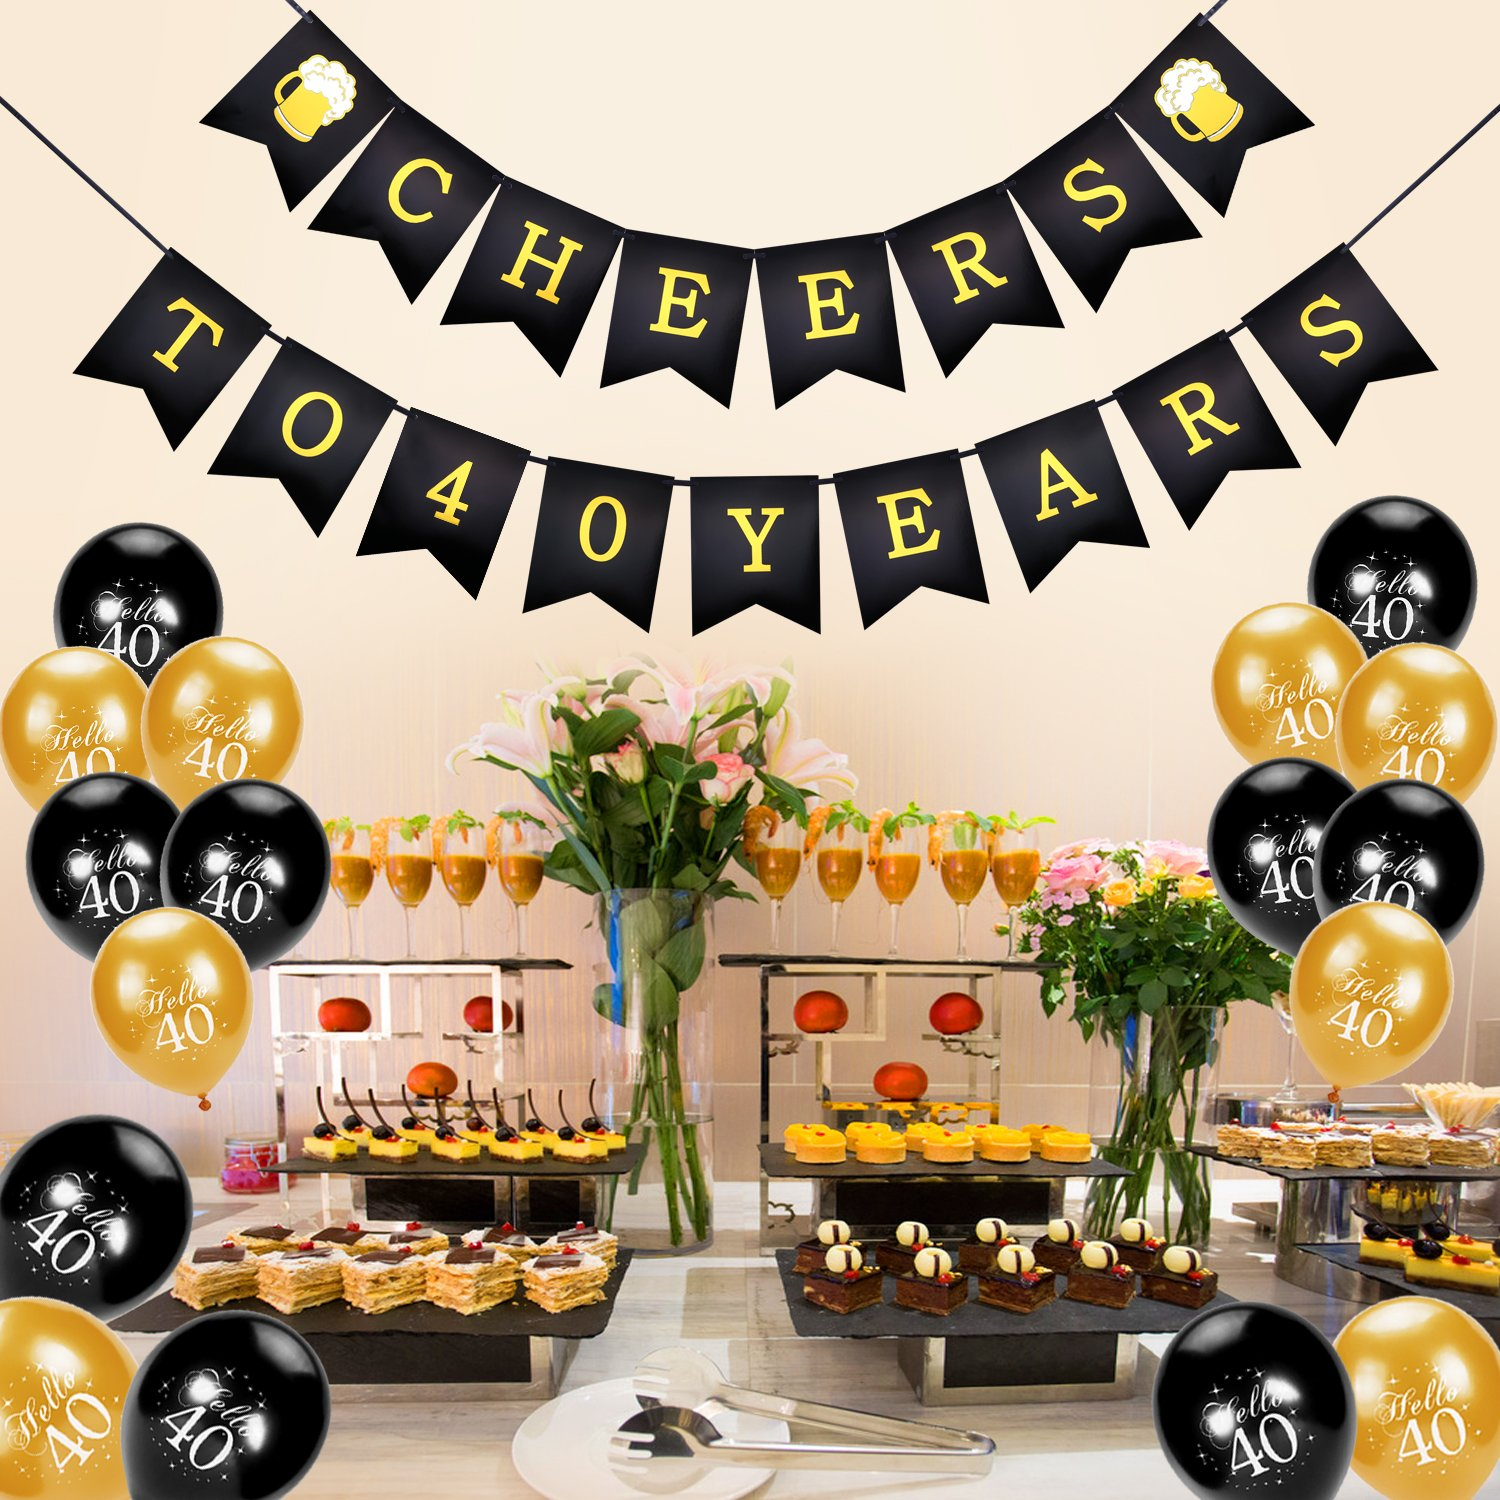 Konsait Cheers To 40 Birthday BannerHello Balloons Black And Goldfor Man Women Celebration 40th For Years Old Party Decor